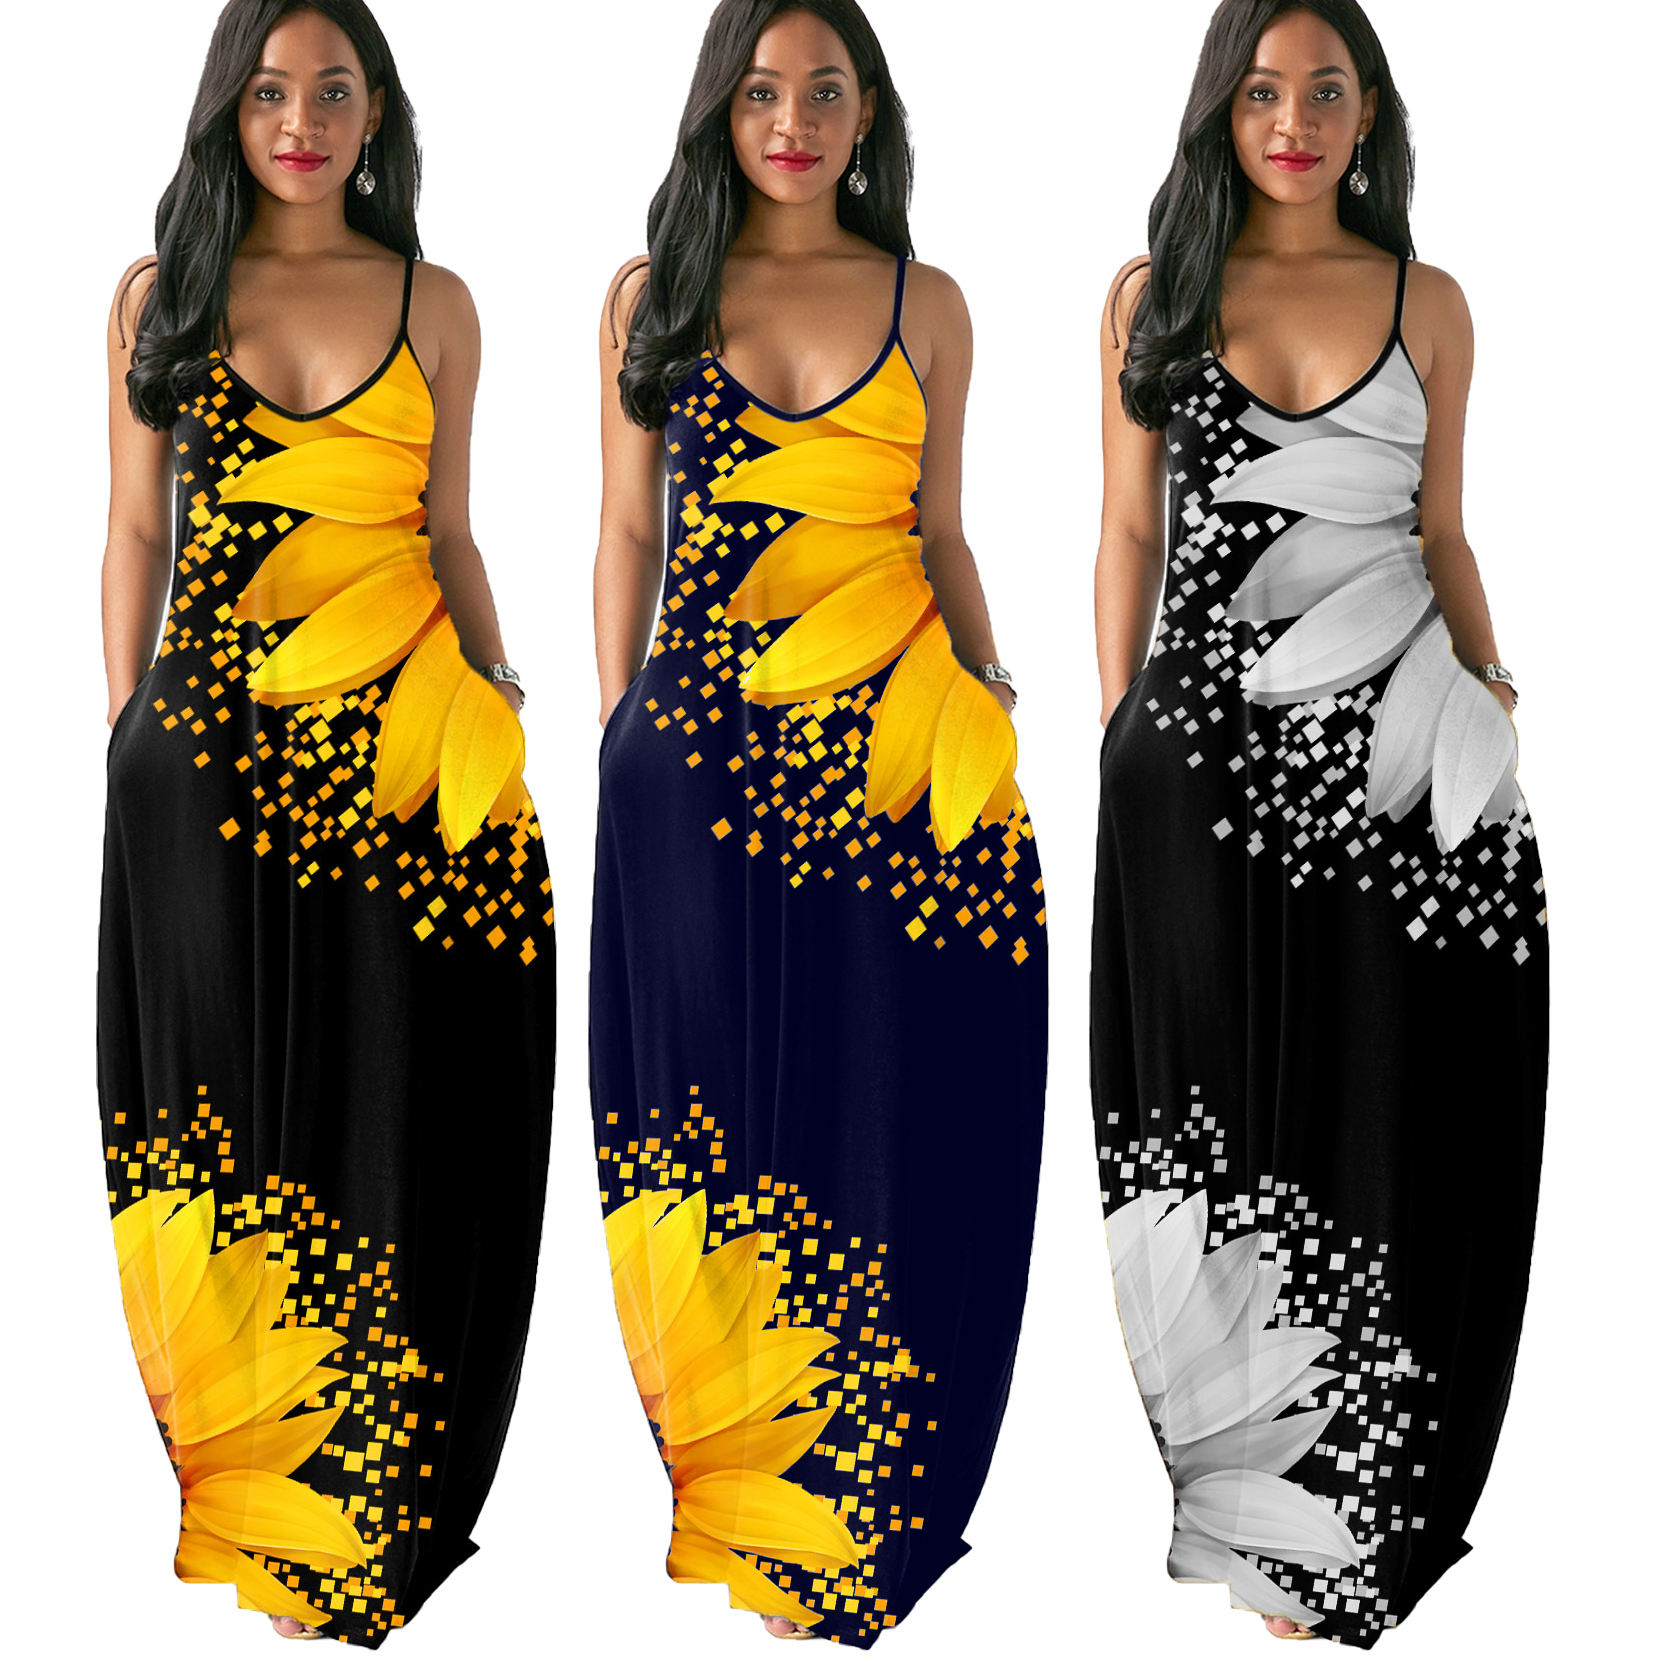 New arrivals 2020 plus size women clothing floral evening summer maxi dress woman